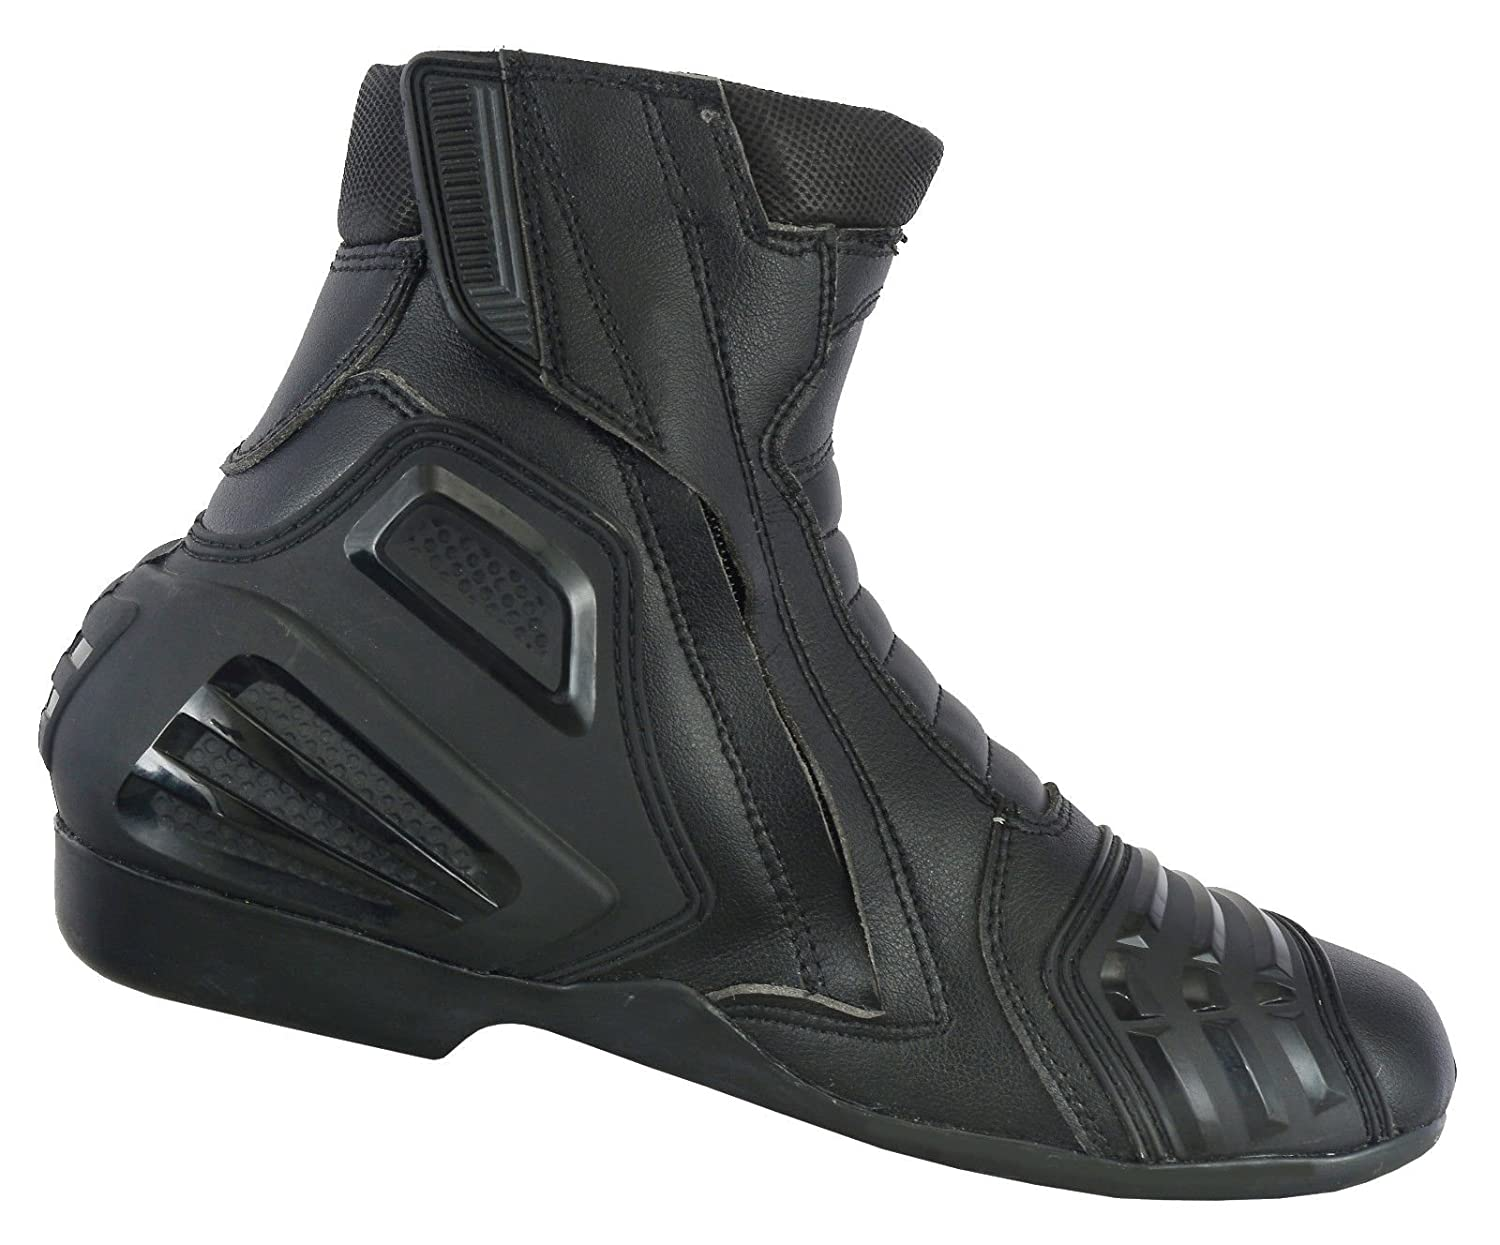 EU 45 PROFIRST Waterproof Motorbike Boots Motorcycle Armoured Short Ankle Shoes Crash Protection Protective Comfortable Racing Touring Sports Safety UK 11 Full Black